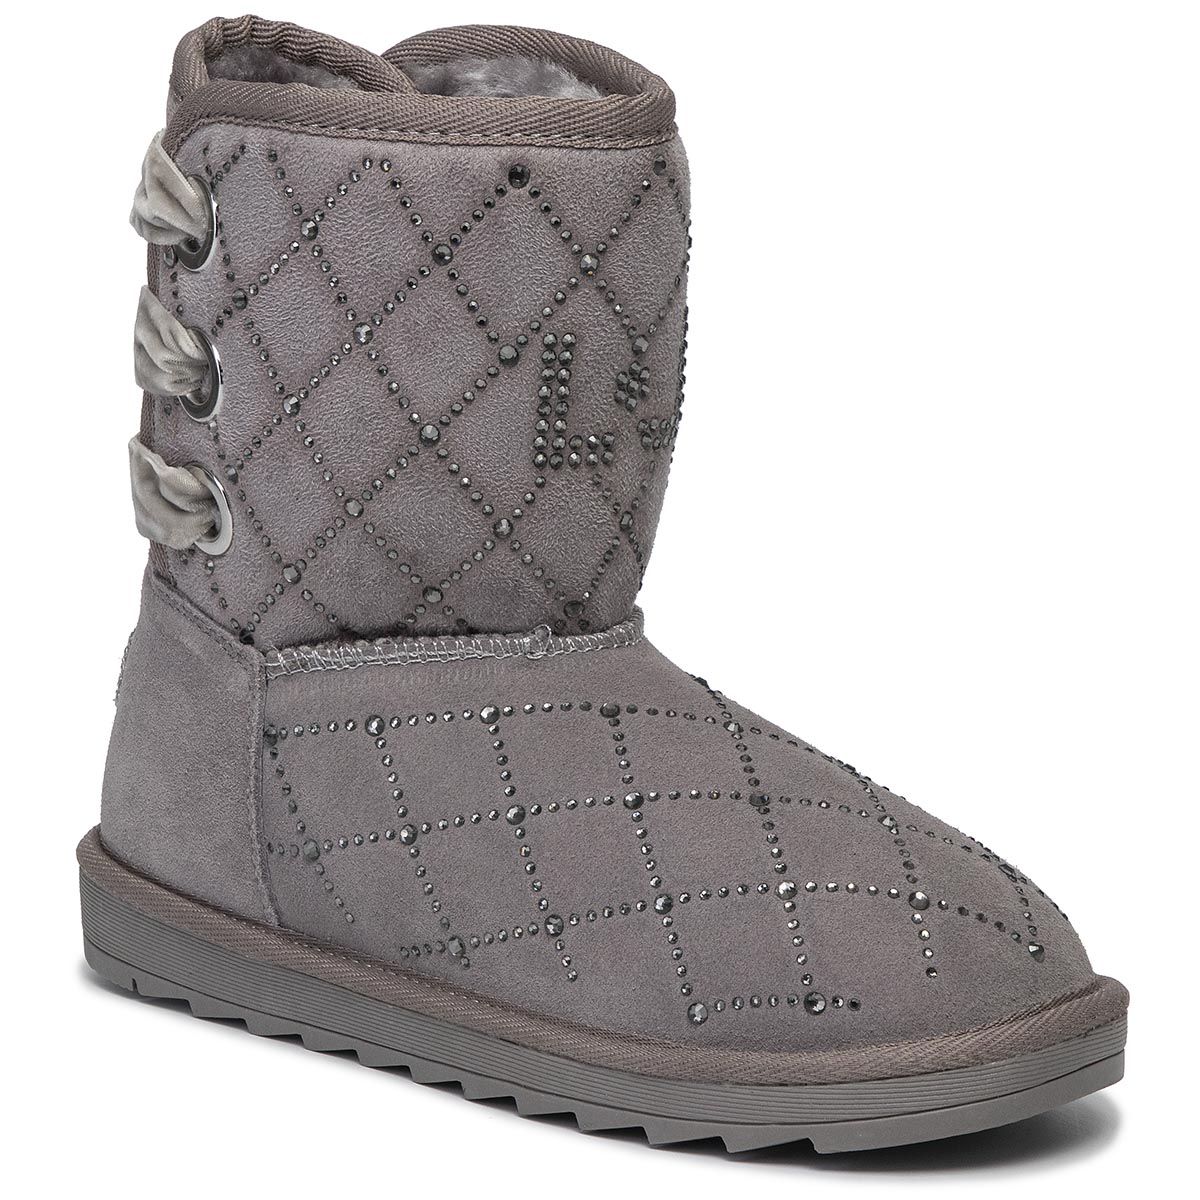 Pantofi Liu Jo - Margot 13 469739 Px052 S Grey 01072 imagine epantofi.ro 2021